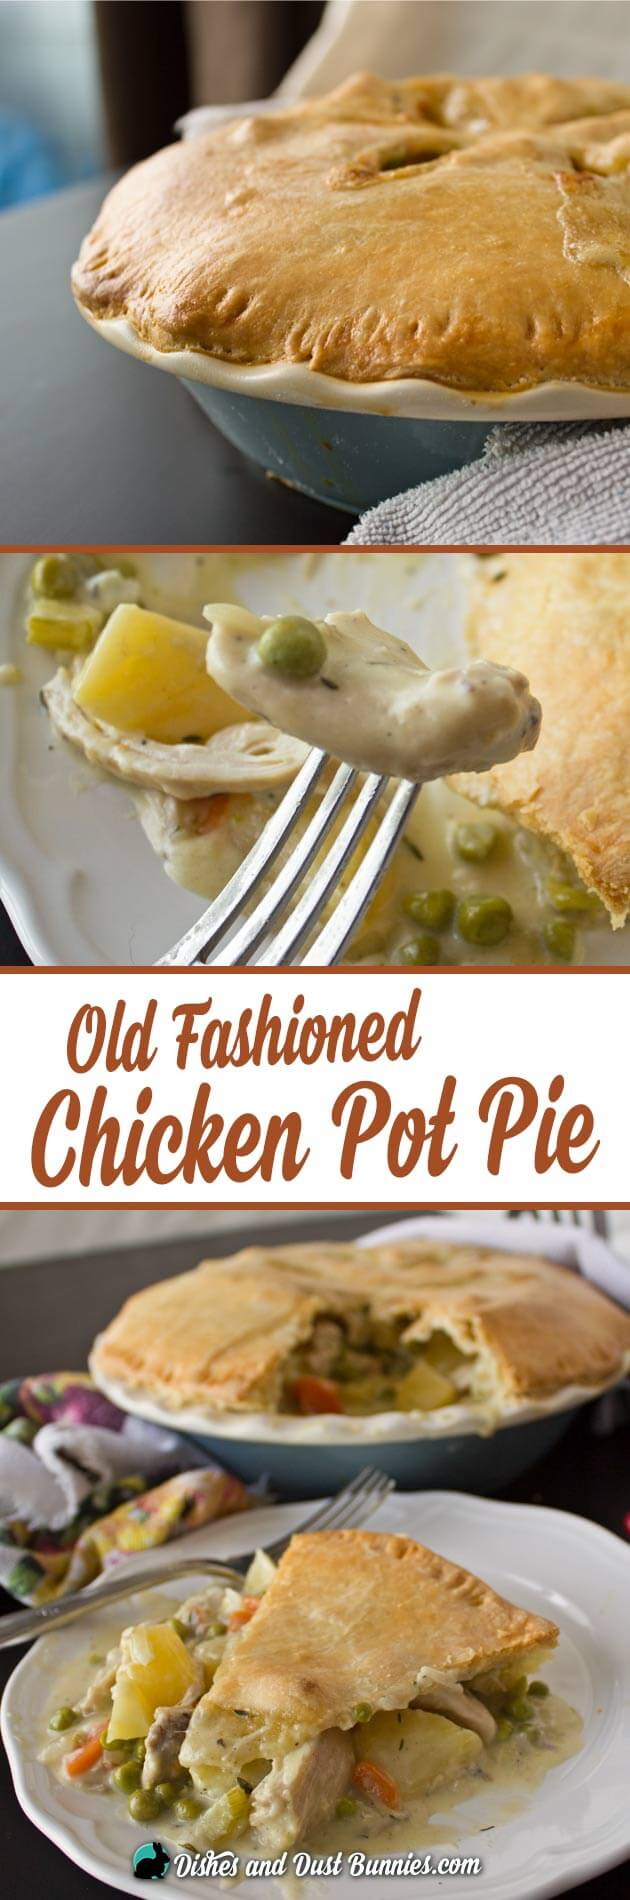 The Best Old Fashioned Chicken Pot Pie Ever Dishes Dust Bunnies